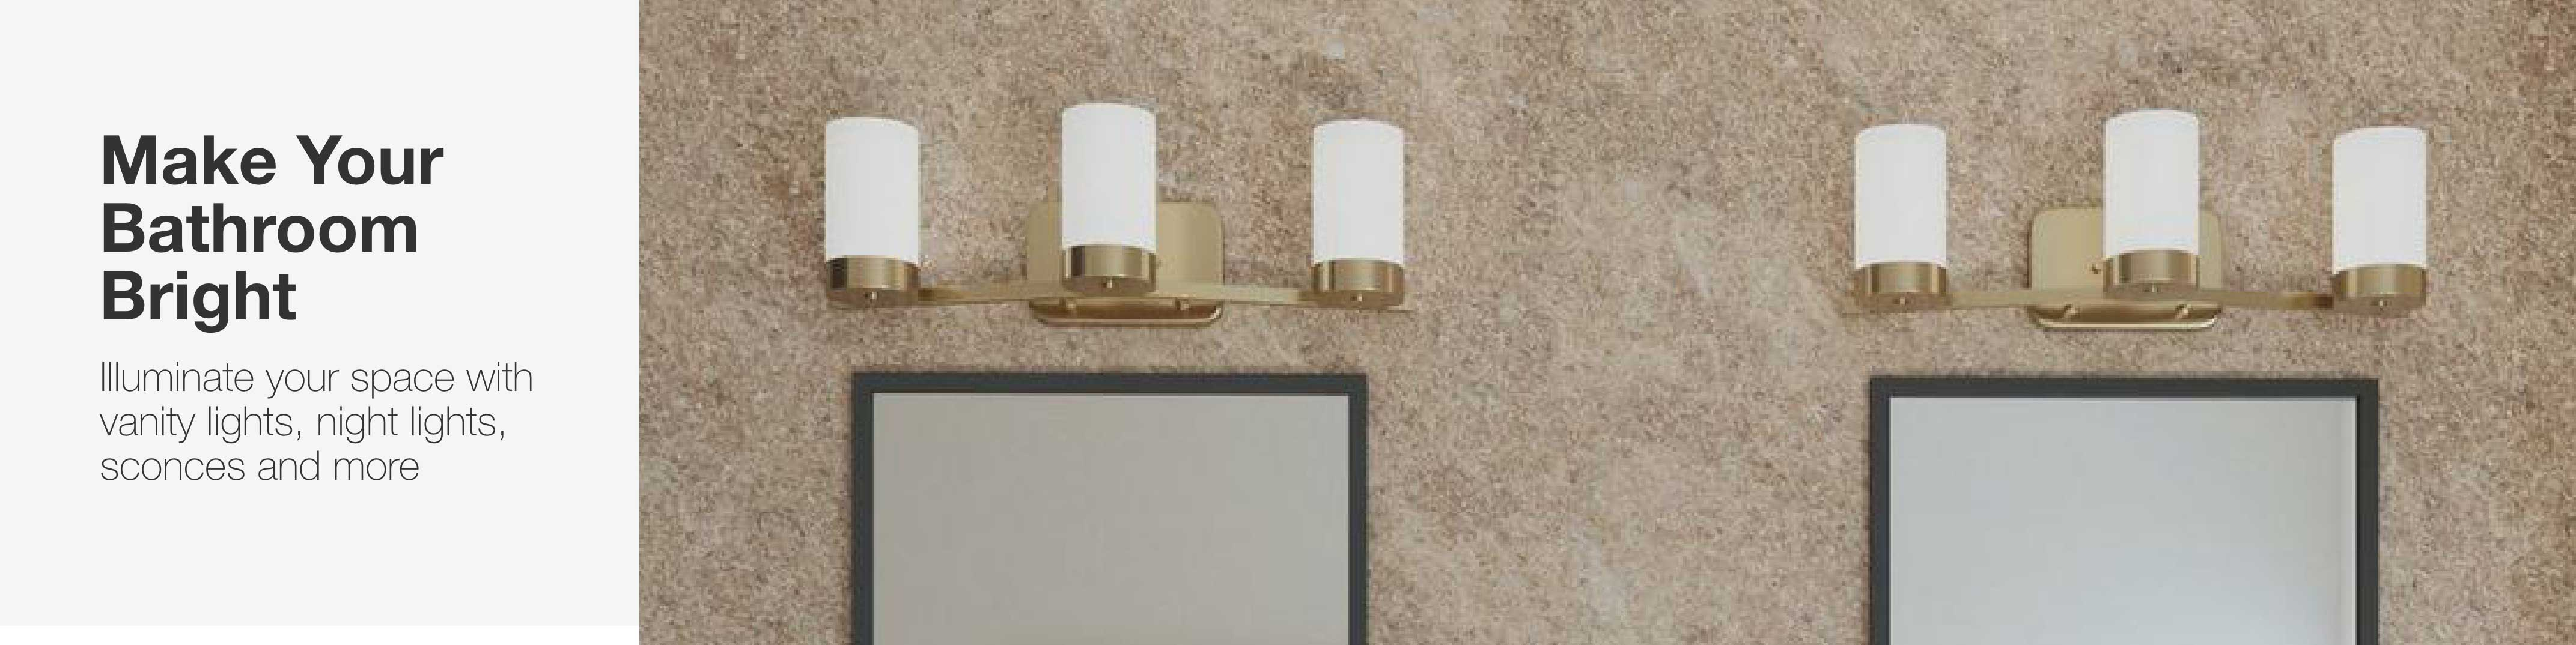 Make your bathroom bright. Illuminate your space with vanity lights, night lights, sconces and more.